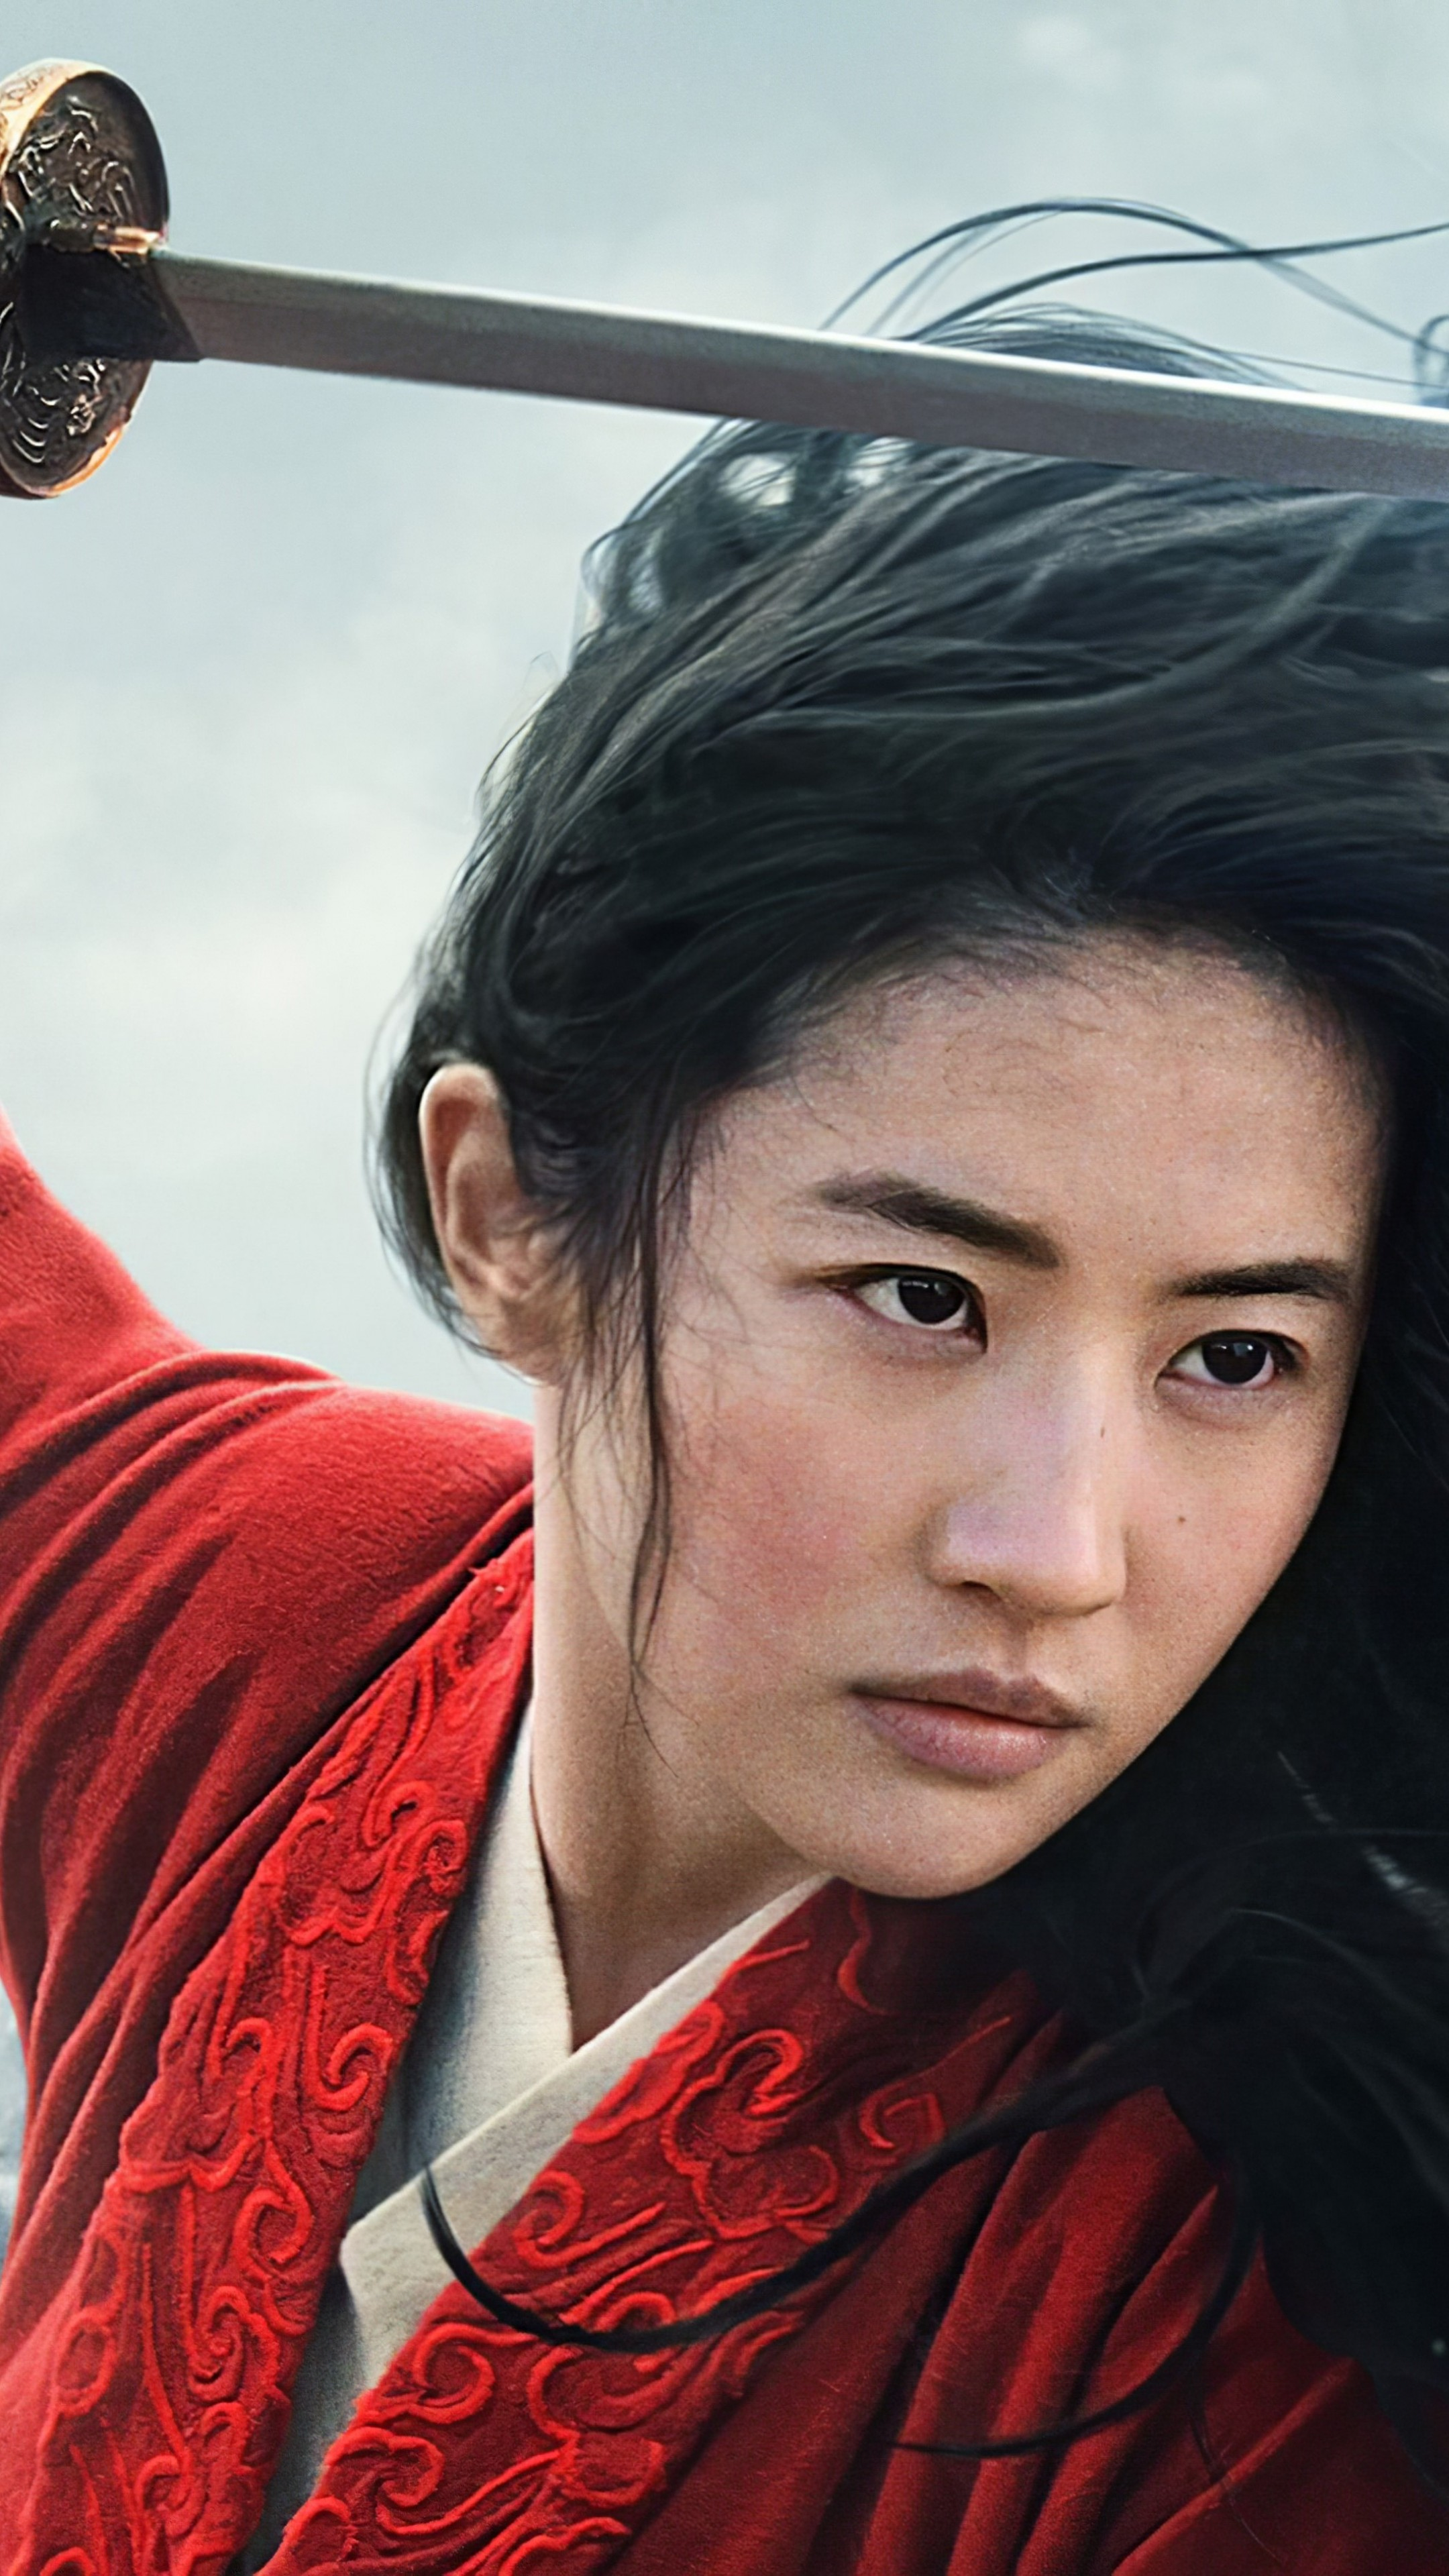 Wallpaper Mulan Yifei Liu Poster 5k Movies 22383